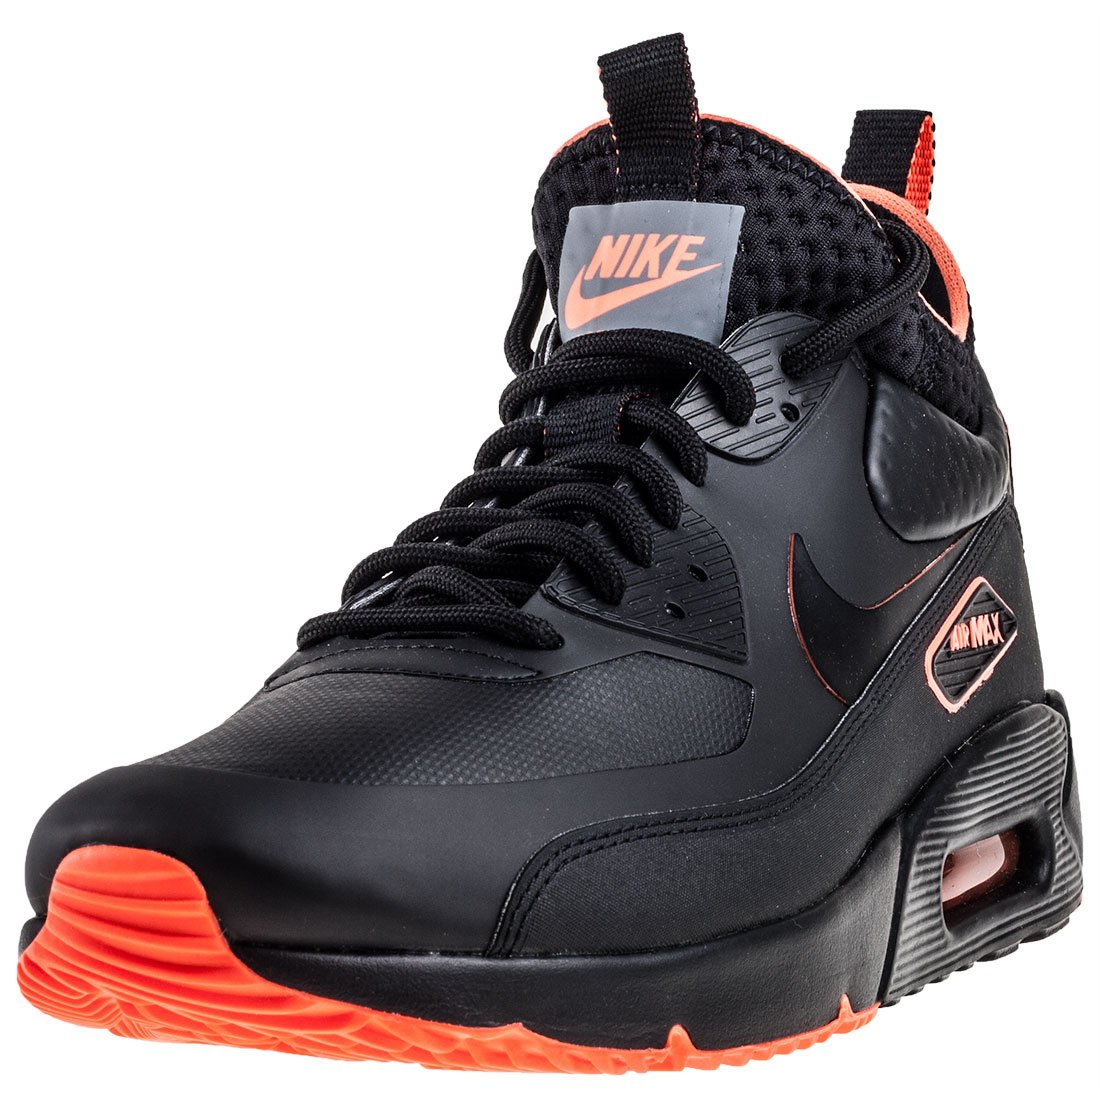 Nike Air Max 90 Ultra Mid Winter Mens Trainers: Amazon.co.uk